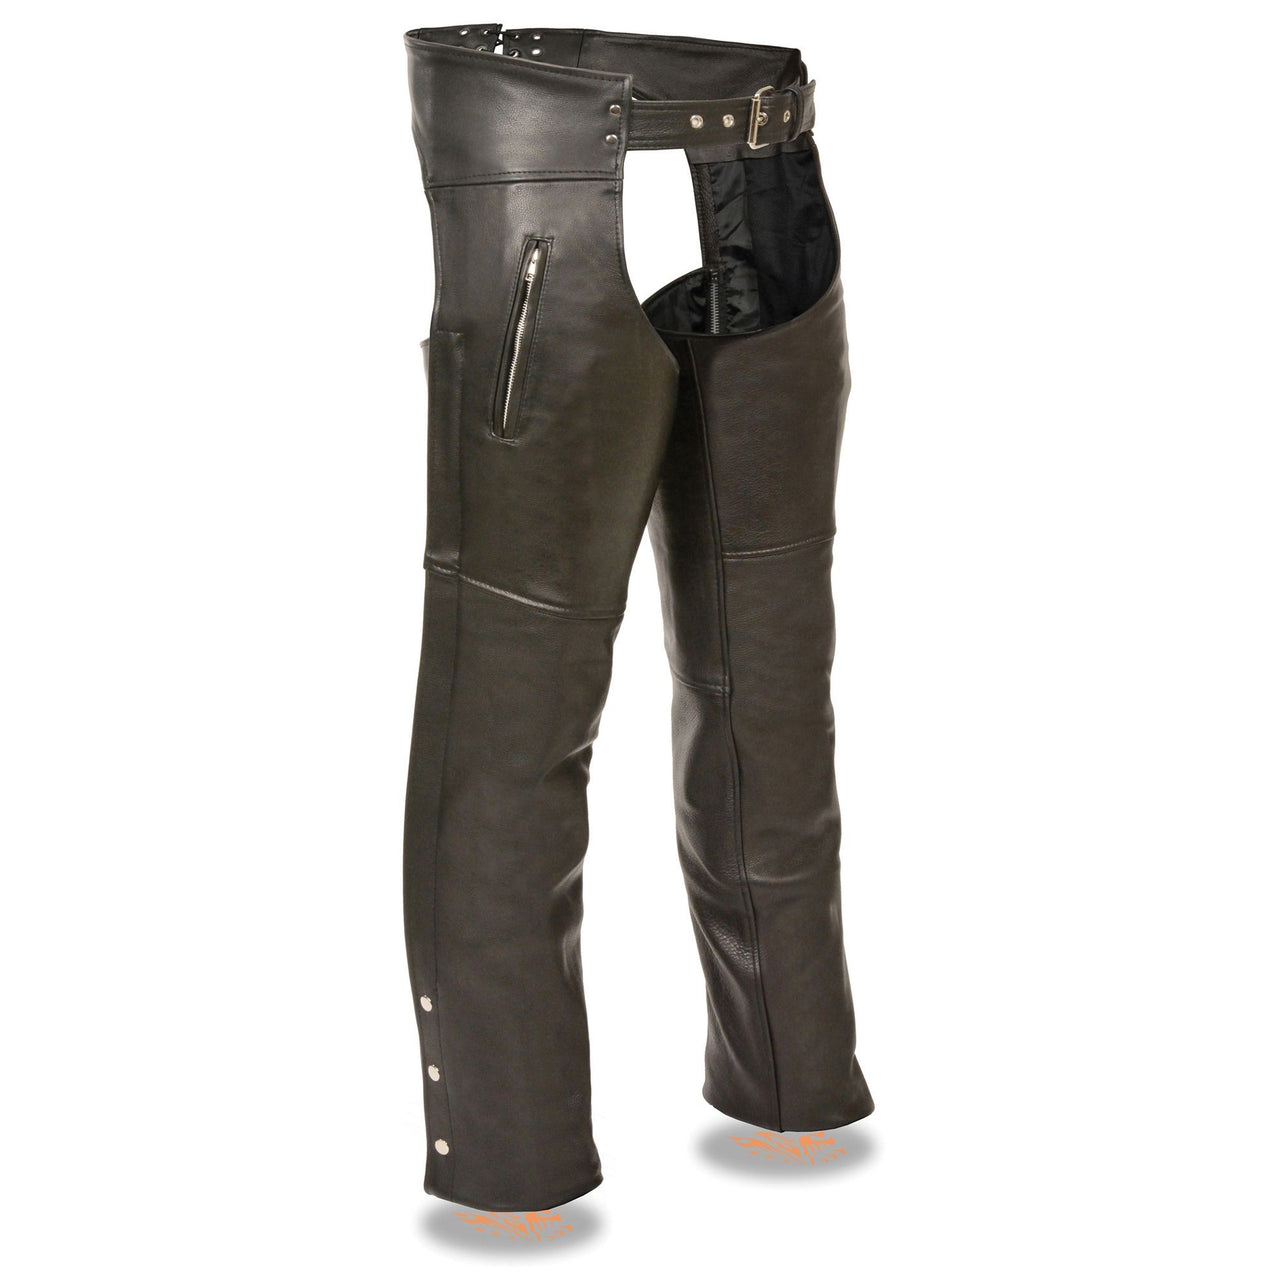 Men's Chap w/ Dual Side Zippered Thigh Pockets - HighwayLeather